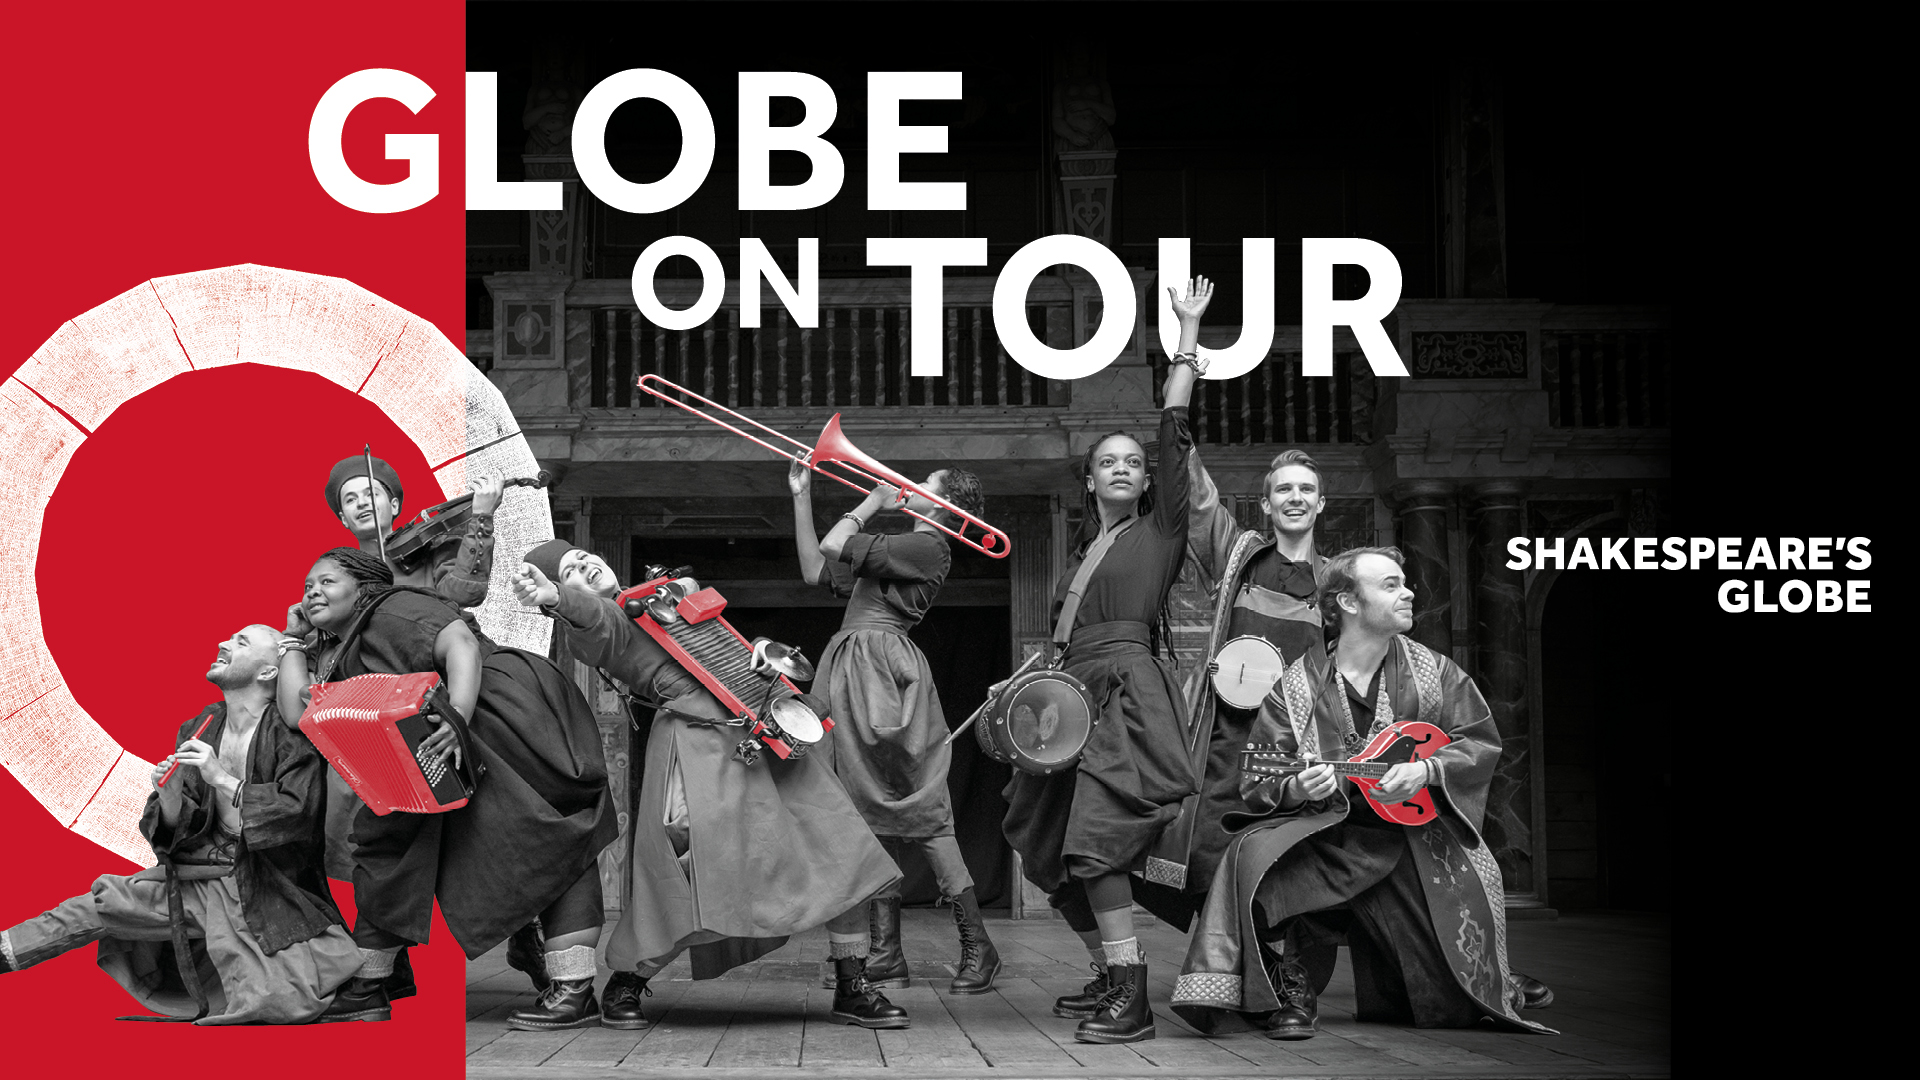 The Reader brings Shakespeare's Globe on tour to Liverpool